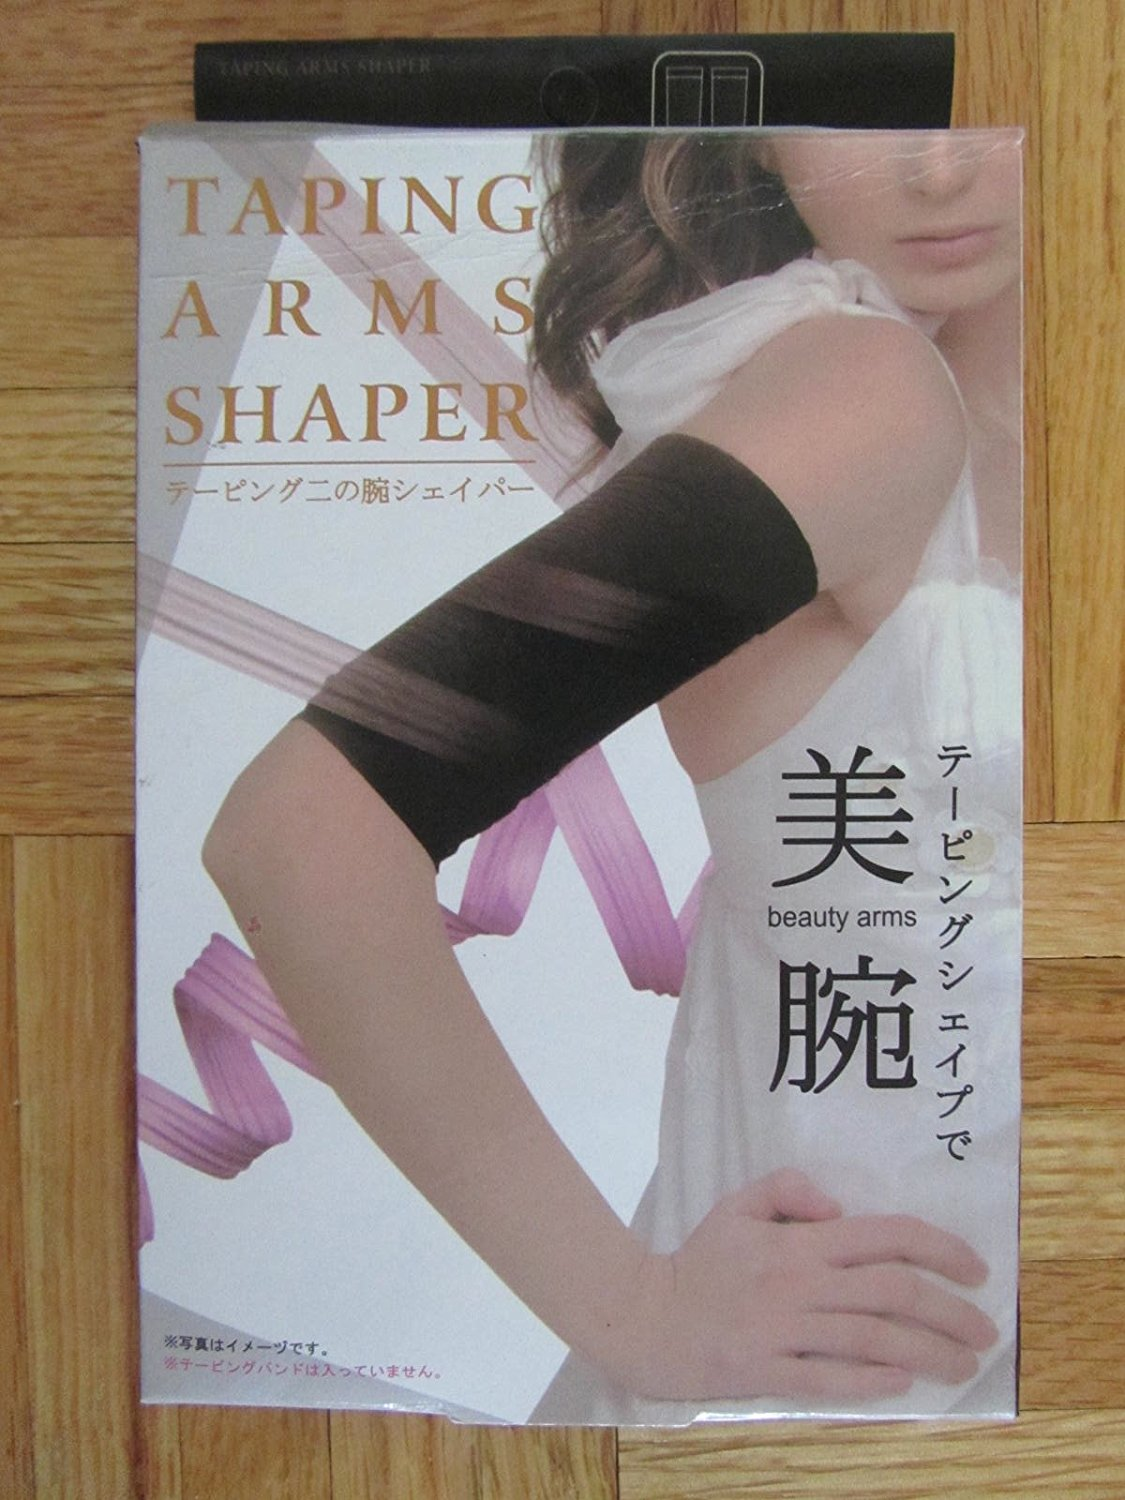 One Pair of Taping Arms Shaper Arm Shaper Compression Sleeves for Slimming Support